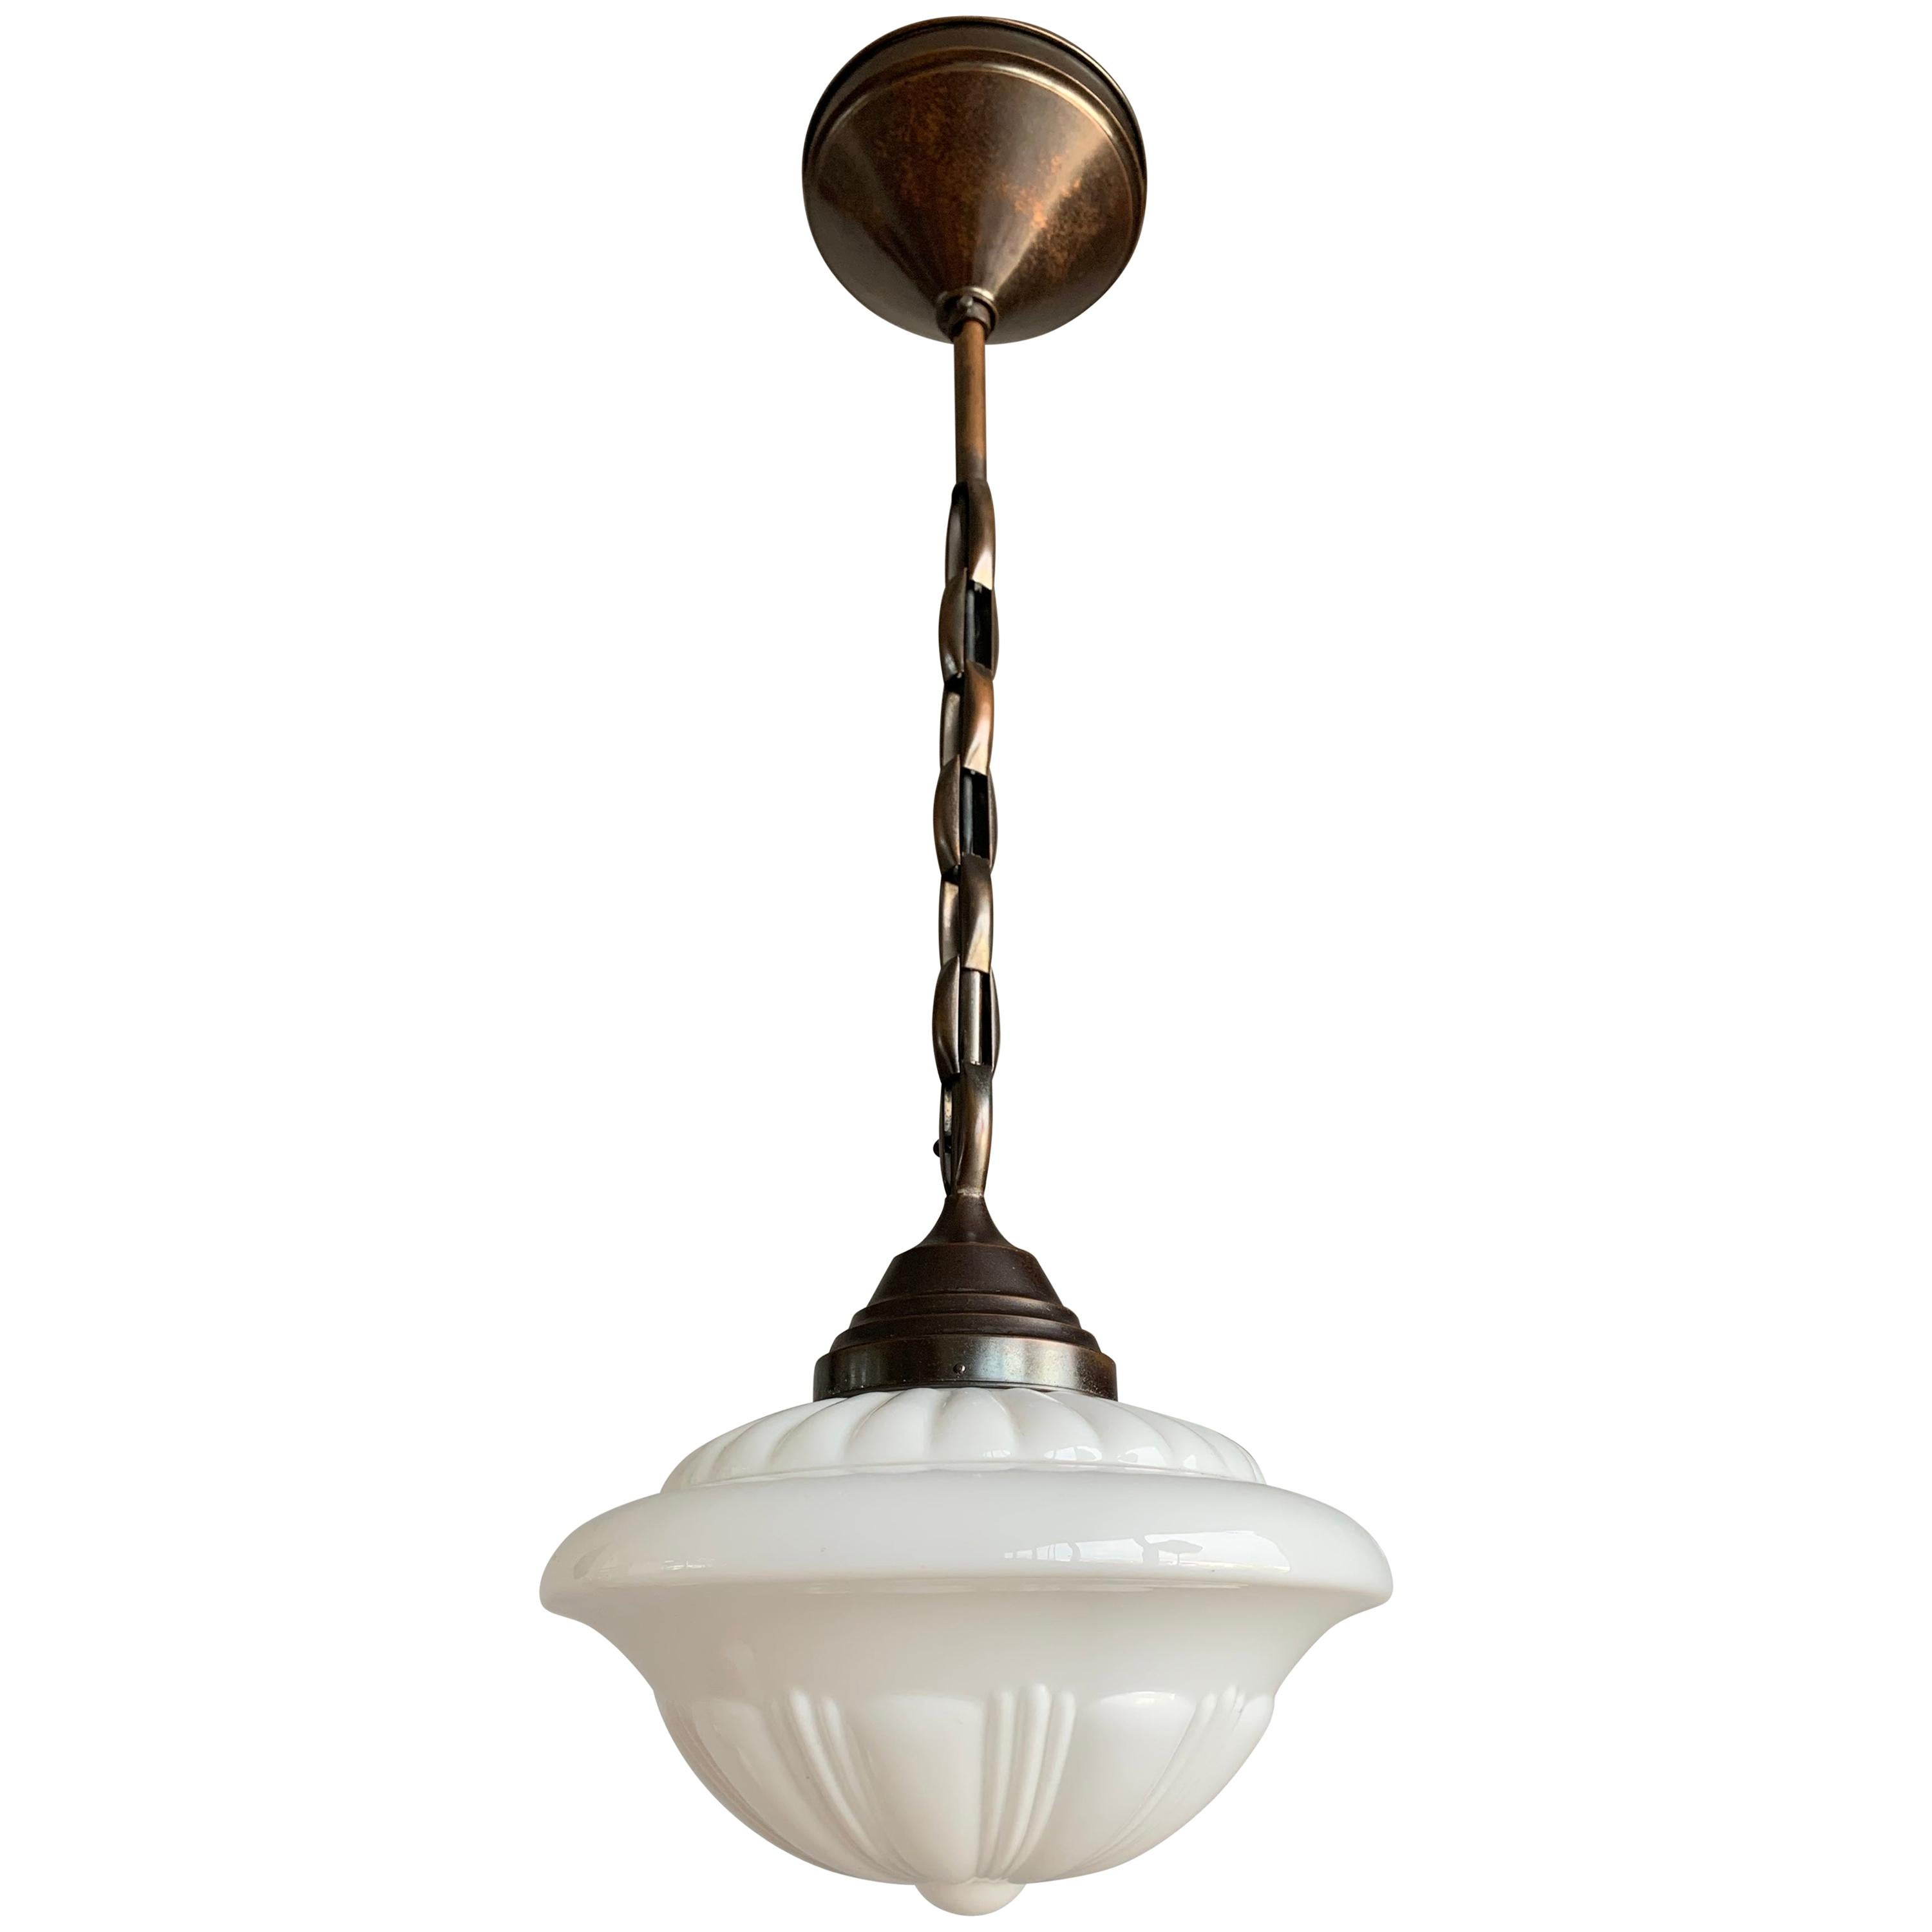 Early 1900s Rare Art Deco Pendant / Light Fixture with Glass Shade & Brass Chain